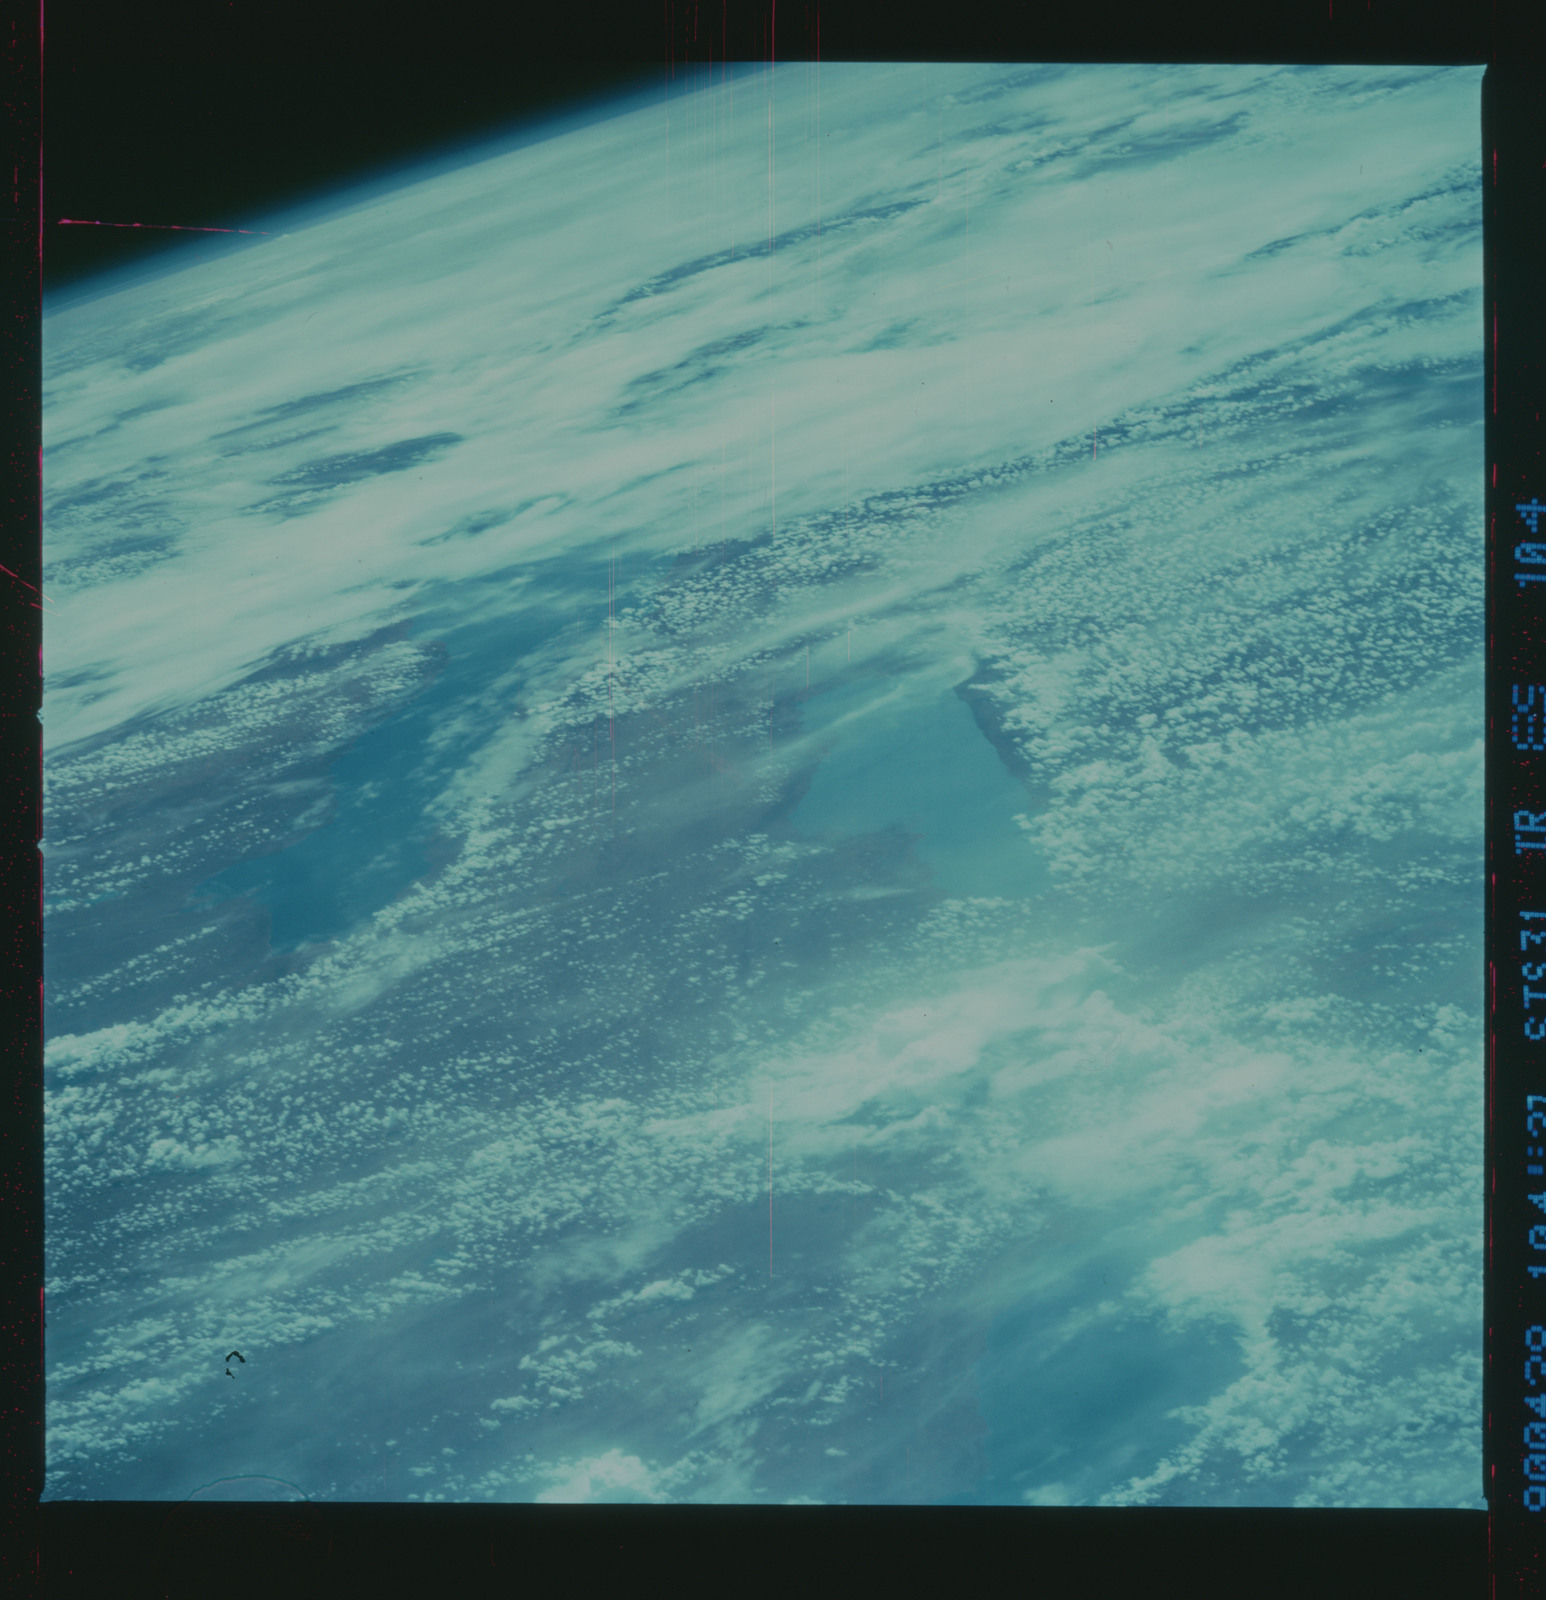 S31-89-104 - STS-031 - STS-31 earth observations